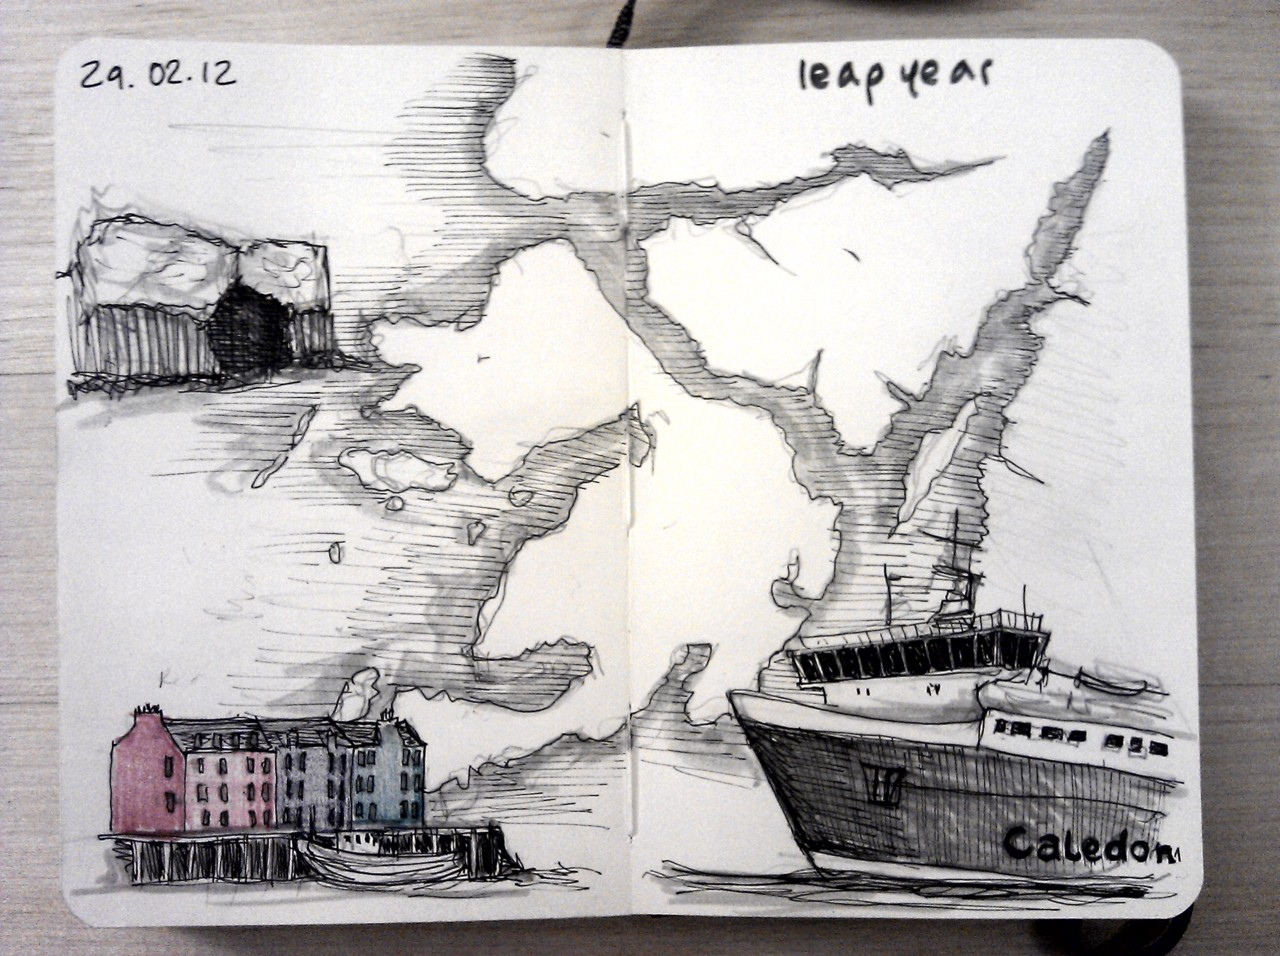 365 drawings later  … day 29 … leap year (as today was a non-day, I reckon I should've had the day off to go island hopping)